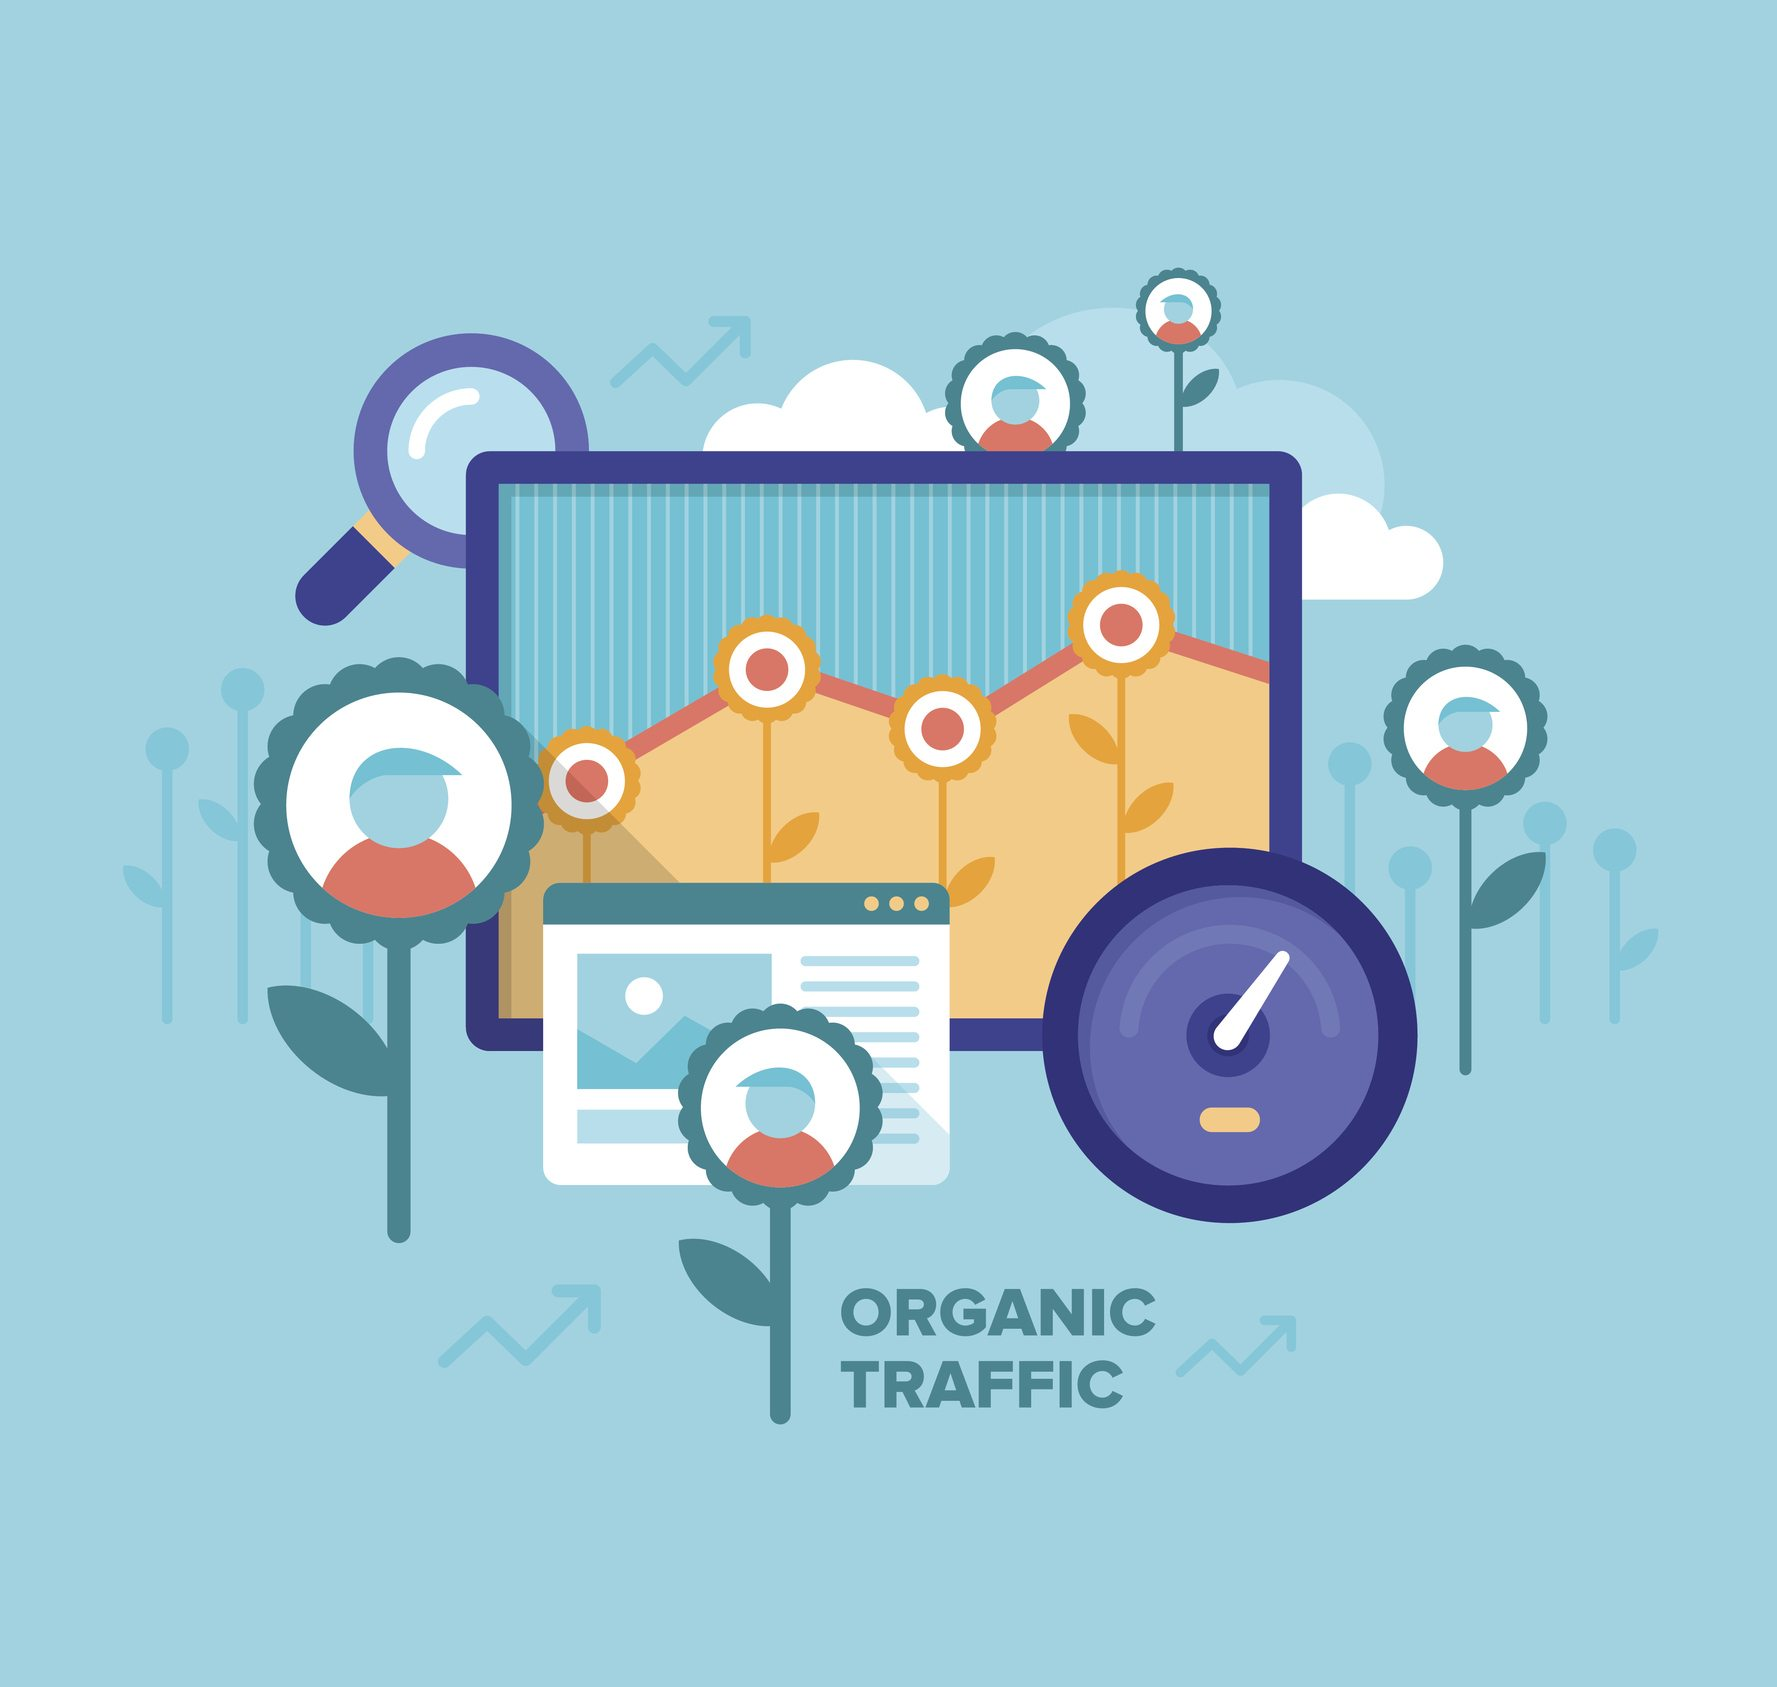 Troubleshooting Your Drop in Organic Search Traffic